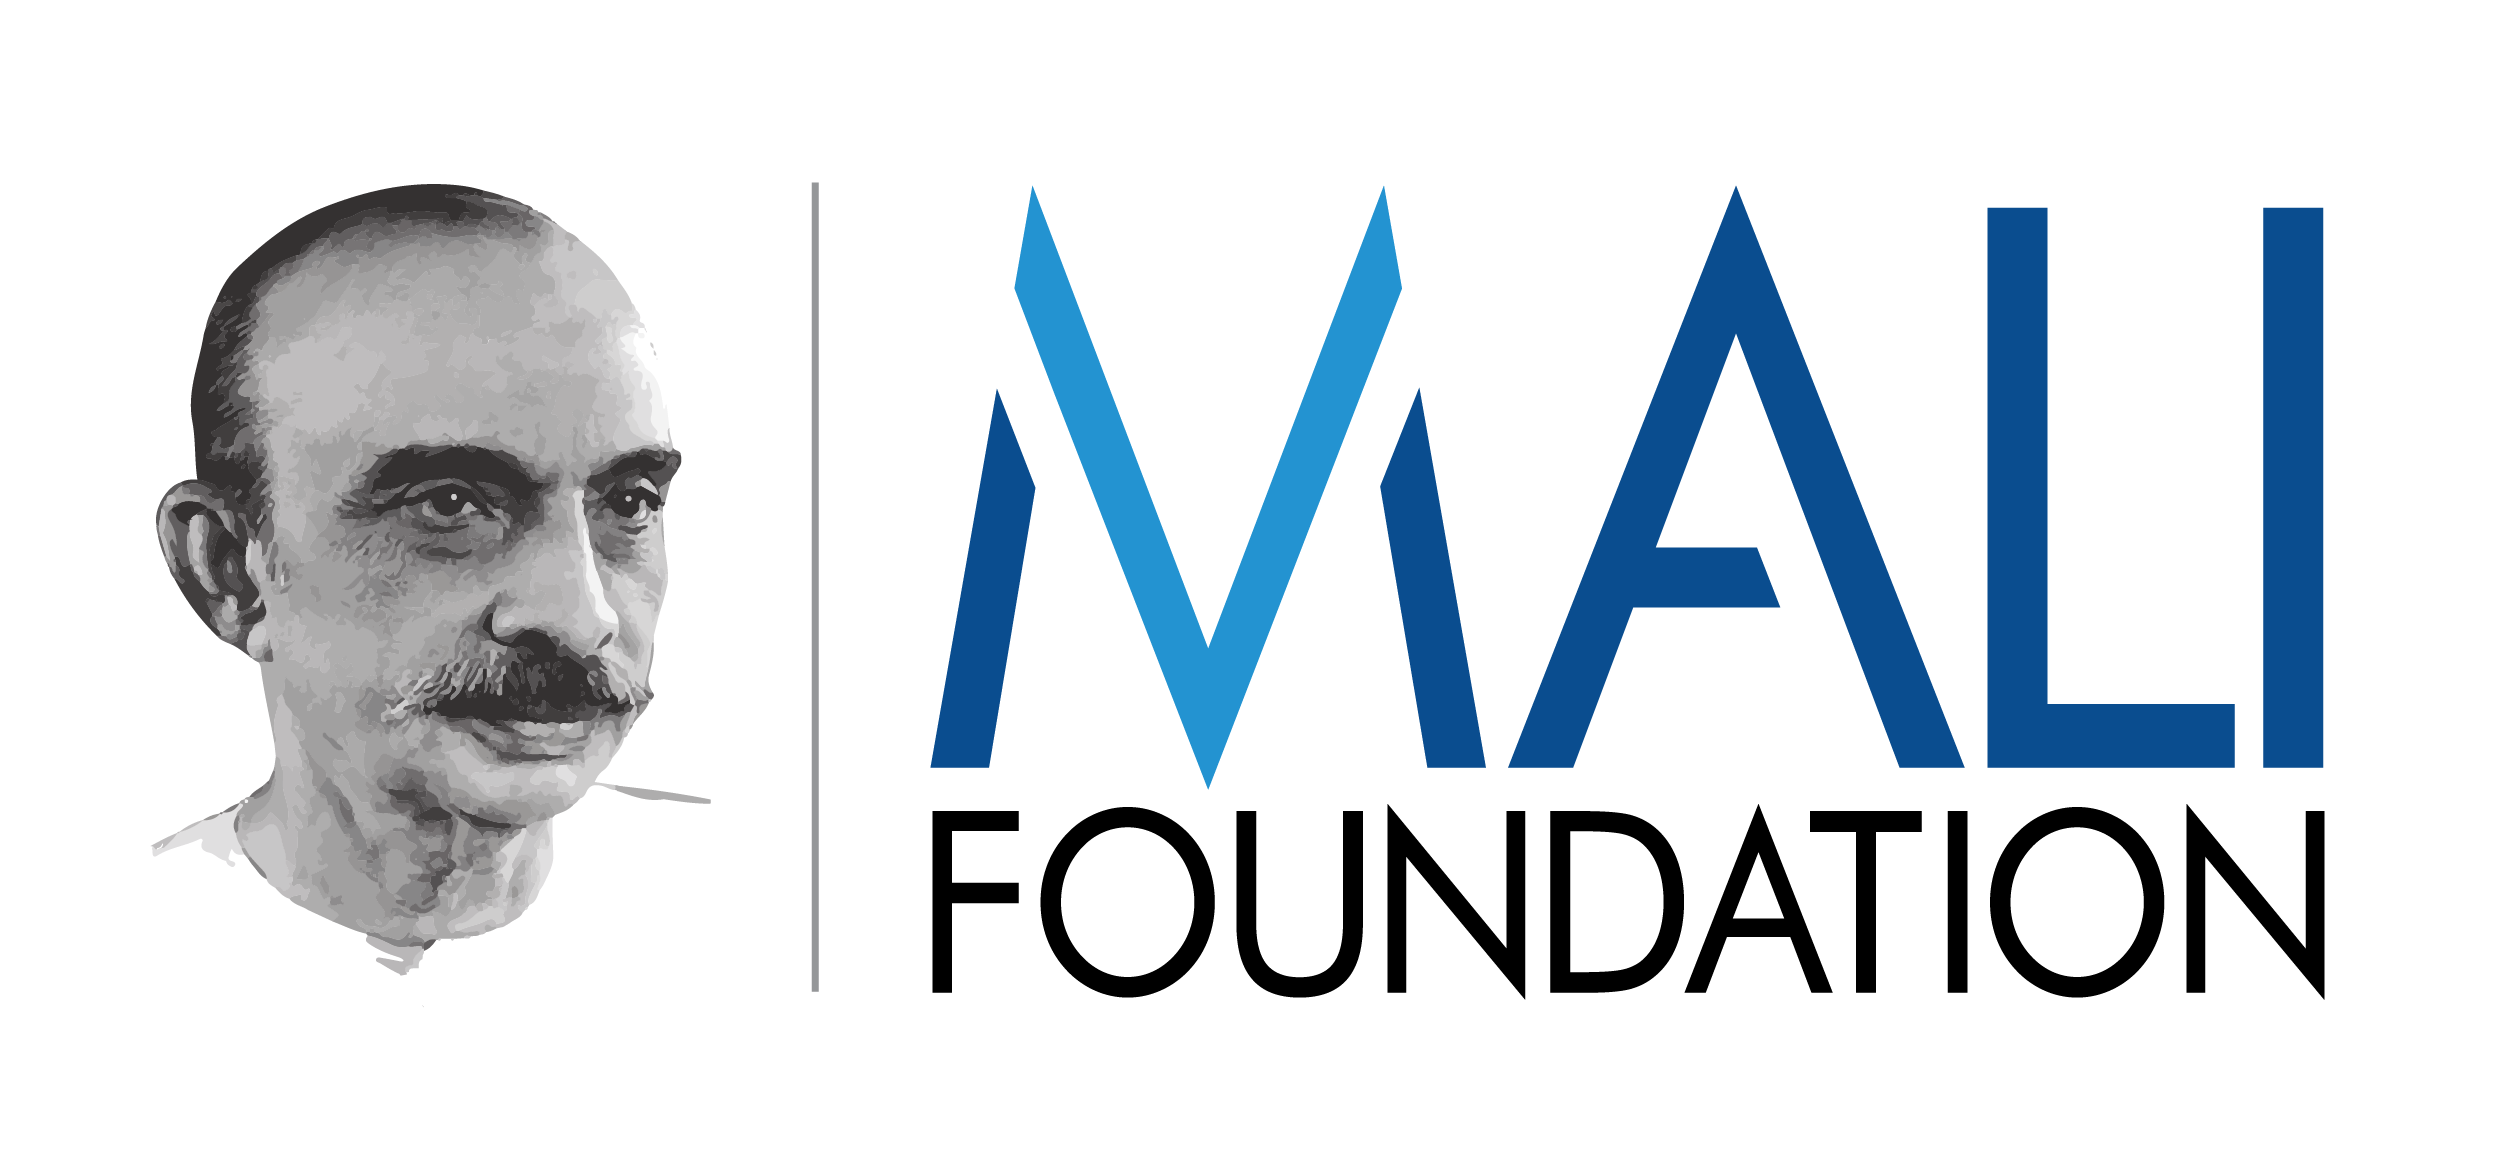 Mali foundation